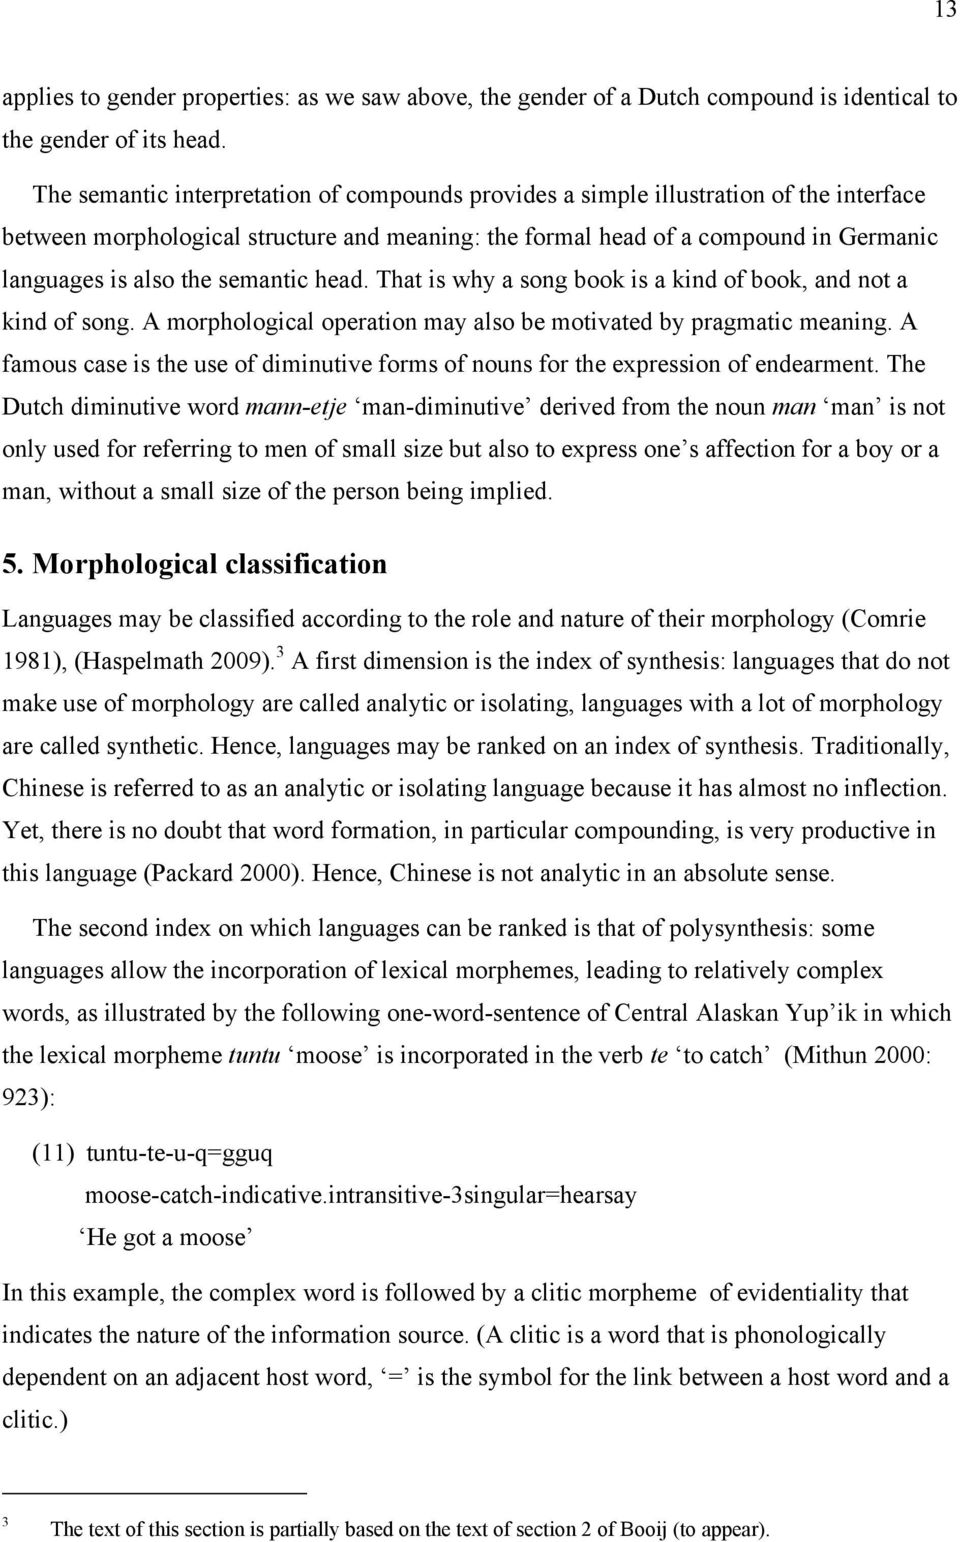 Chapter 7 Morphology: the structure of words - PDF